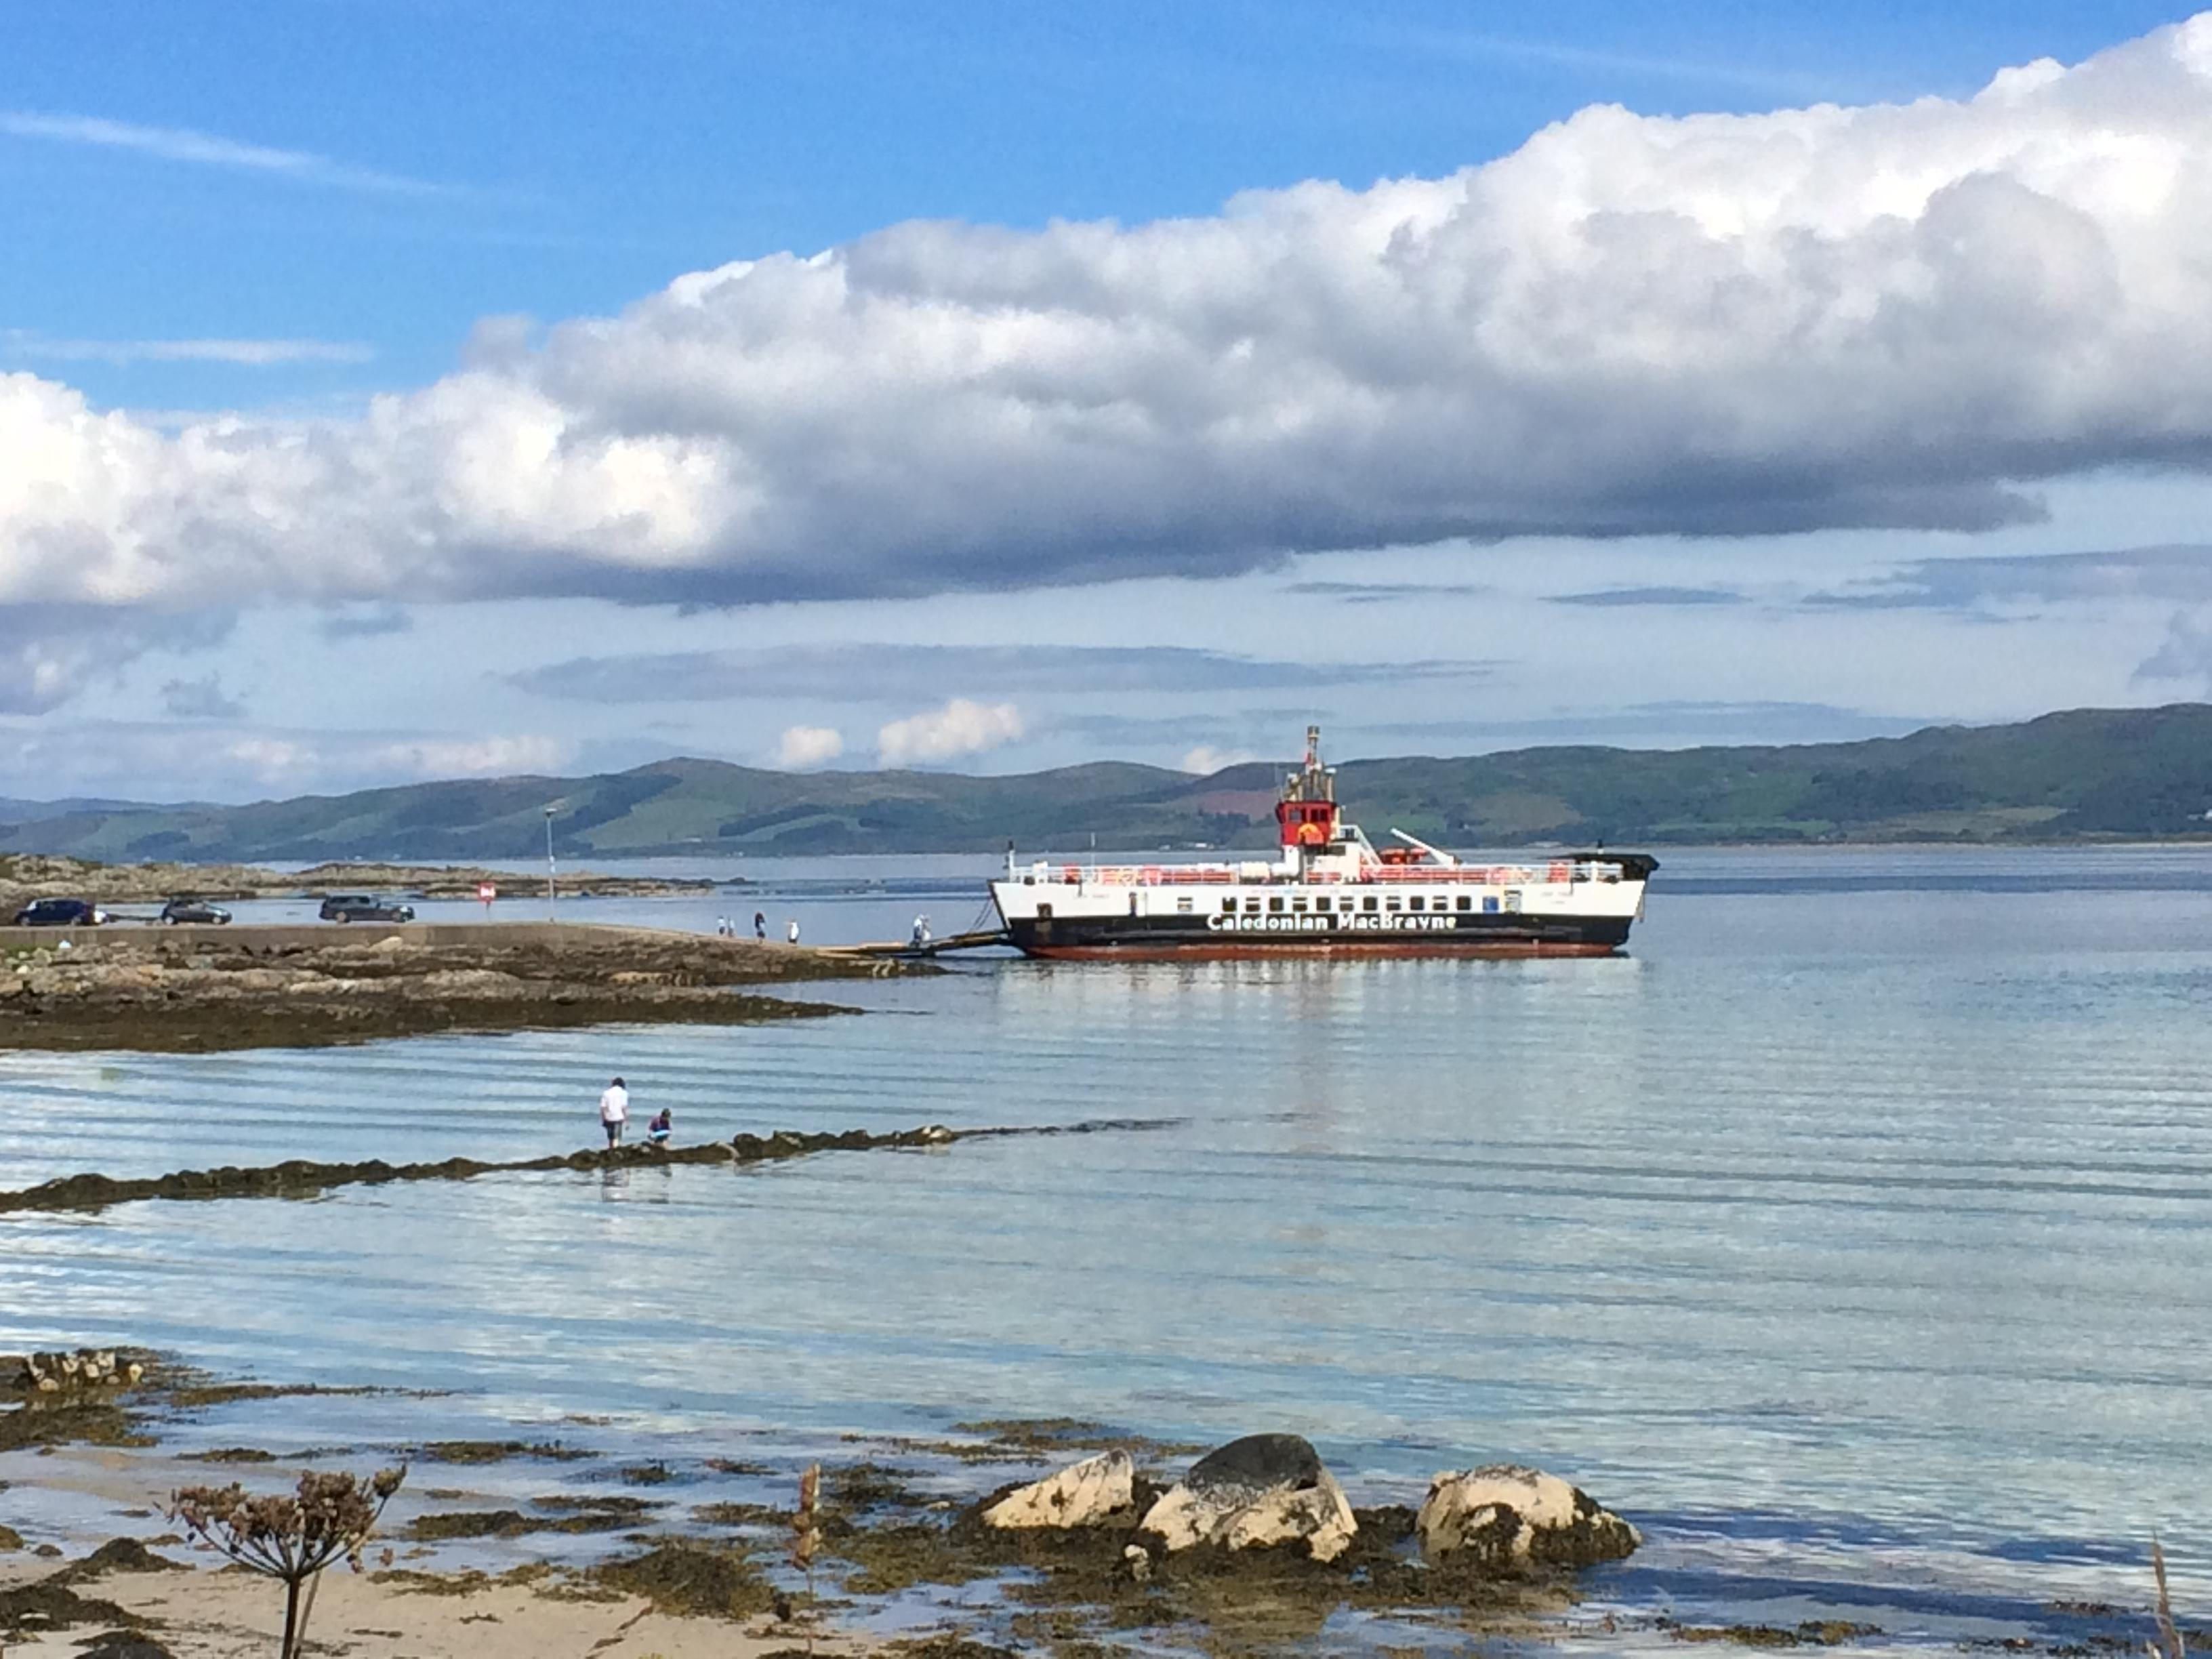 CalMac ferry at Gigha